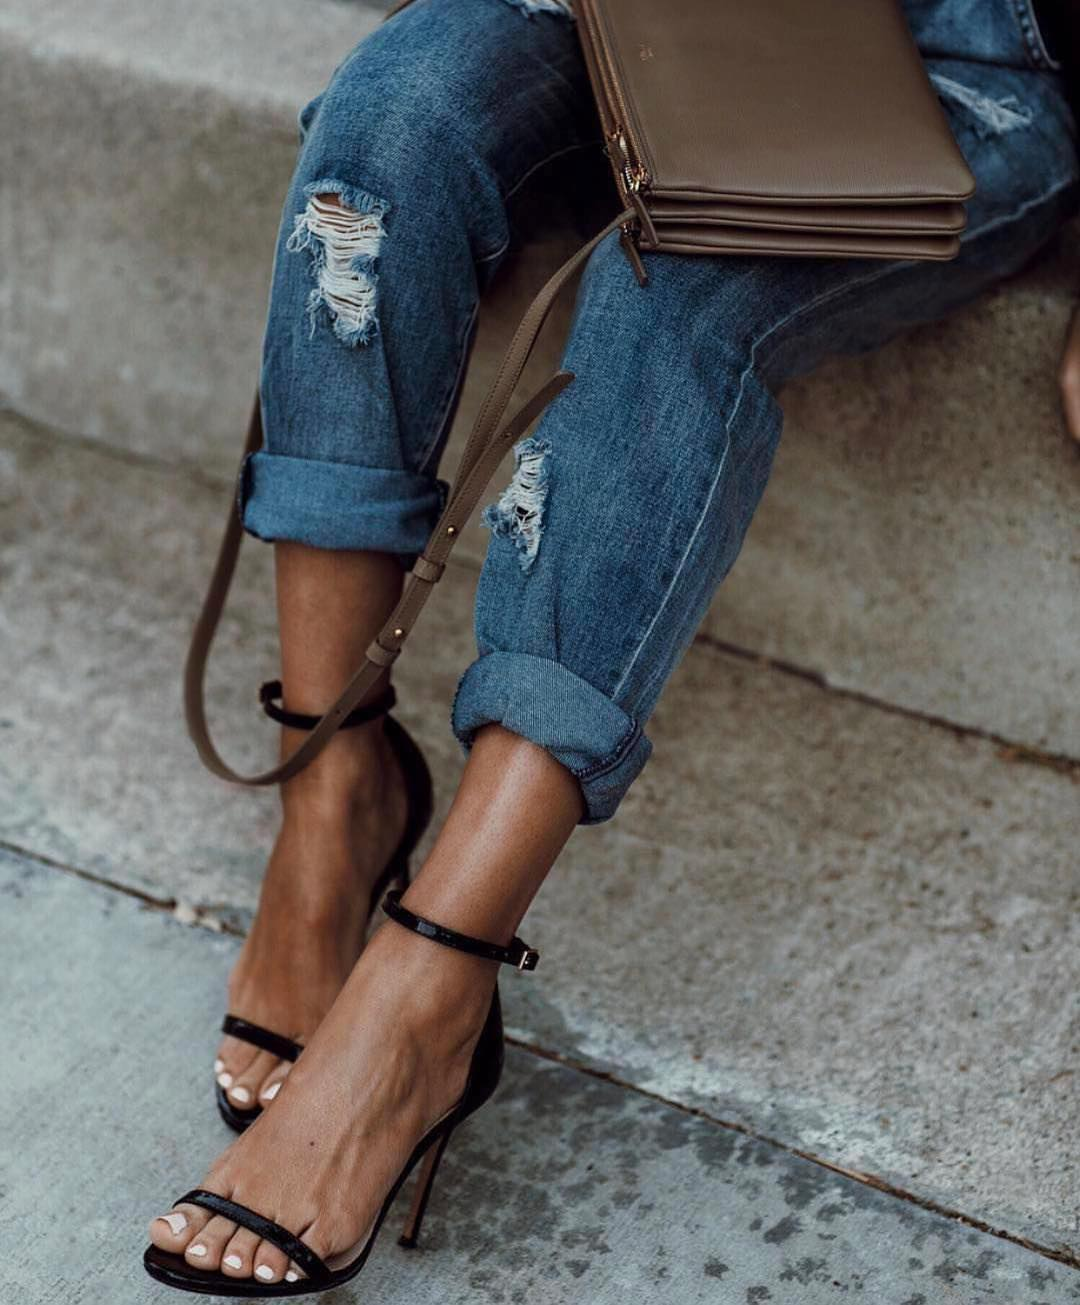 Cuffed Boyfriend Jeans And Ankle Strap Heeled Sandals In Black 2019